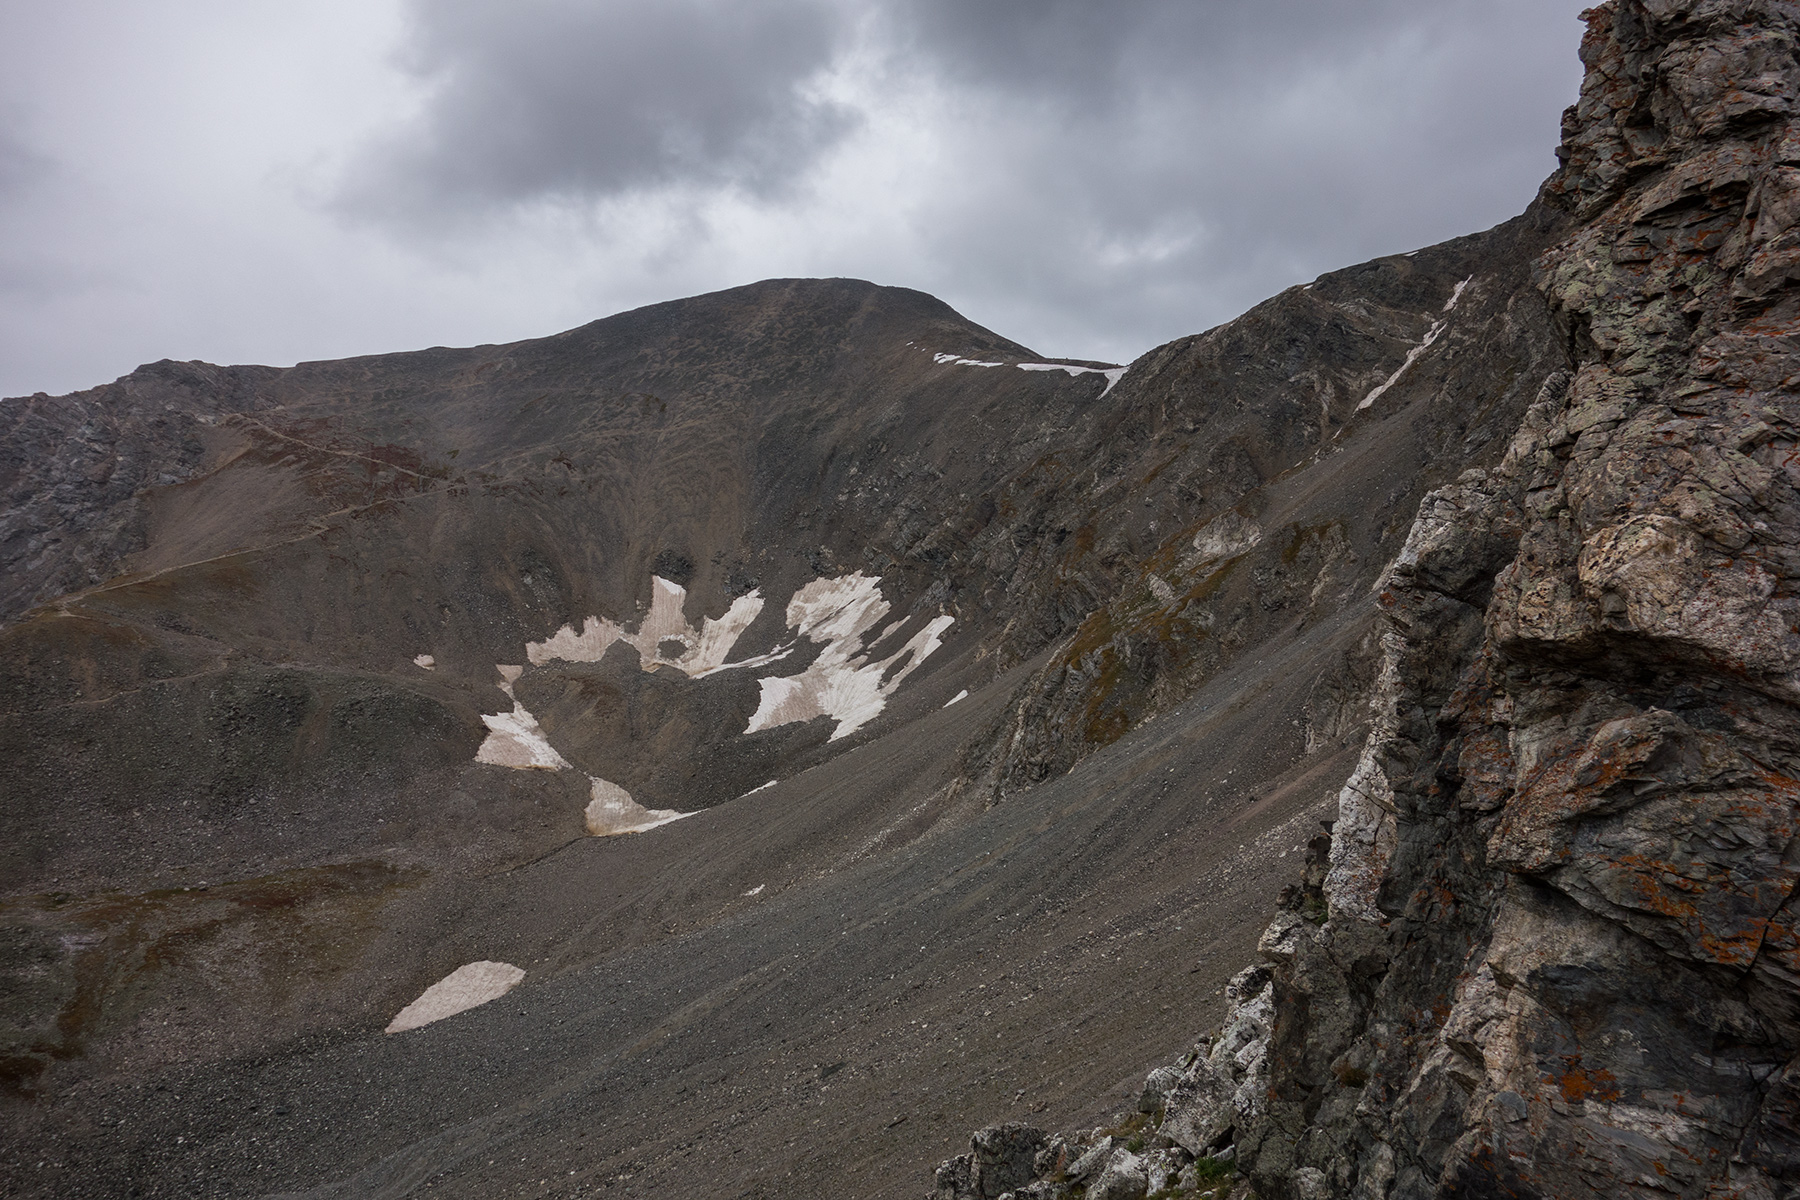 Torreys Peak, Grays Peak (CO) – Photo Gallery